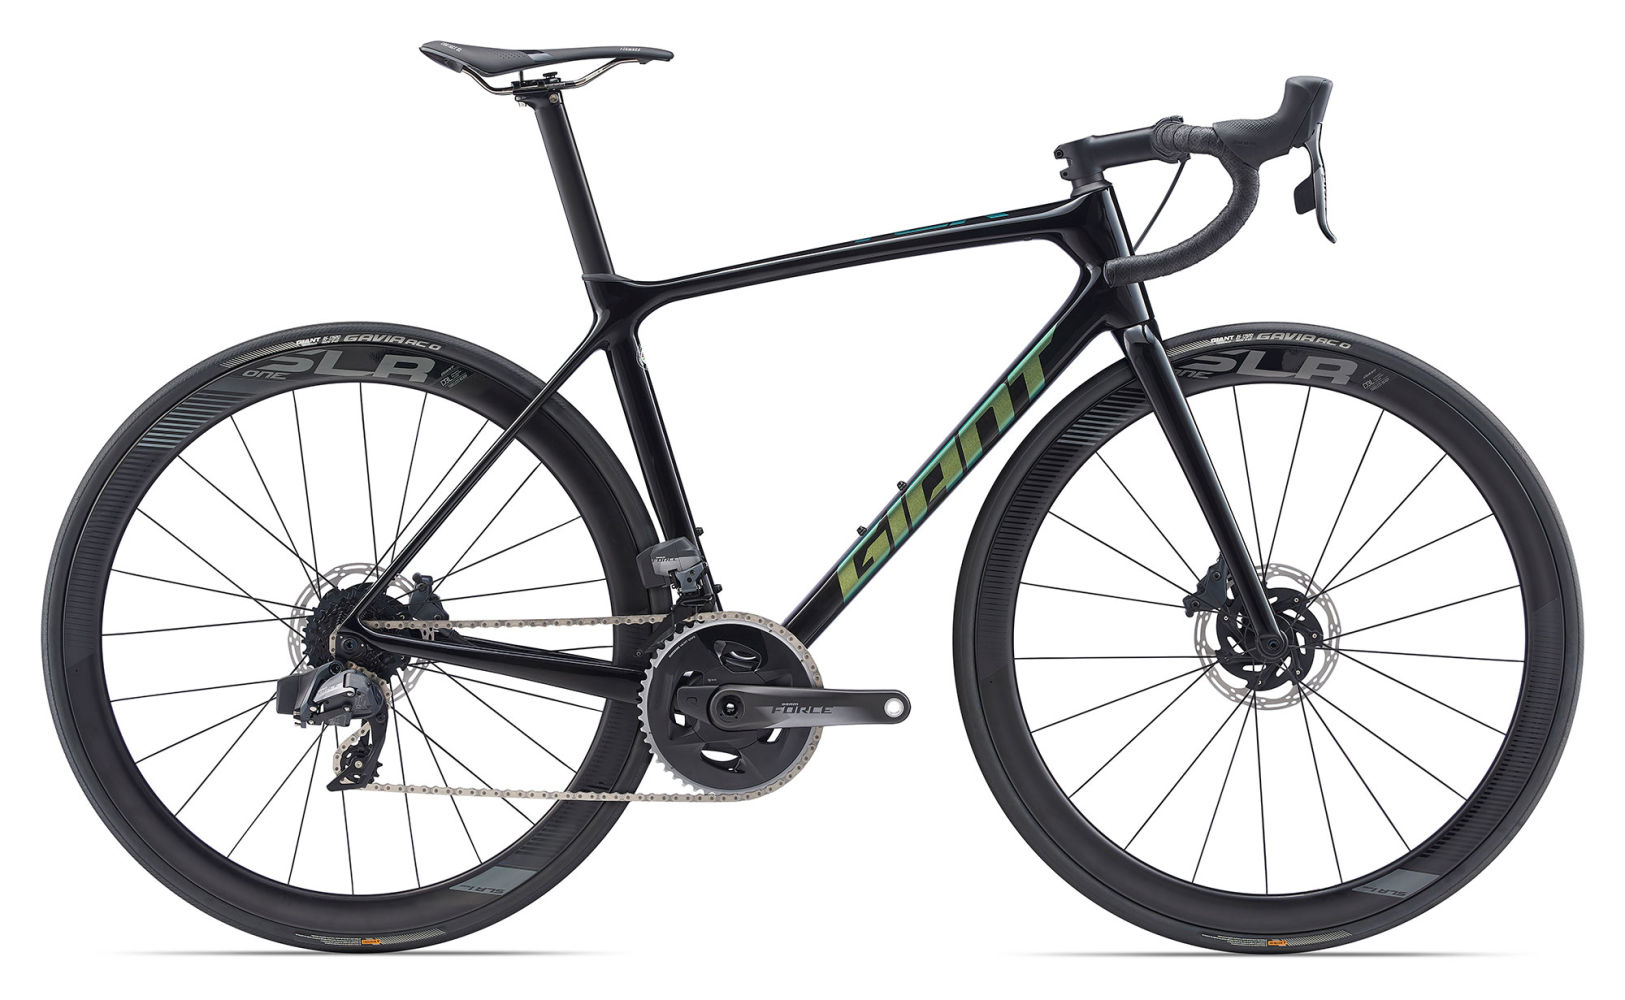 TCR ADVANCED PRO 0 DISC FORCE graphic